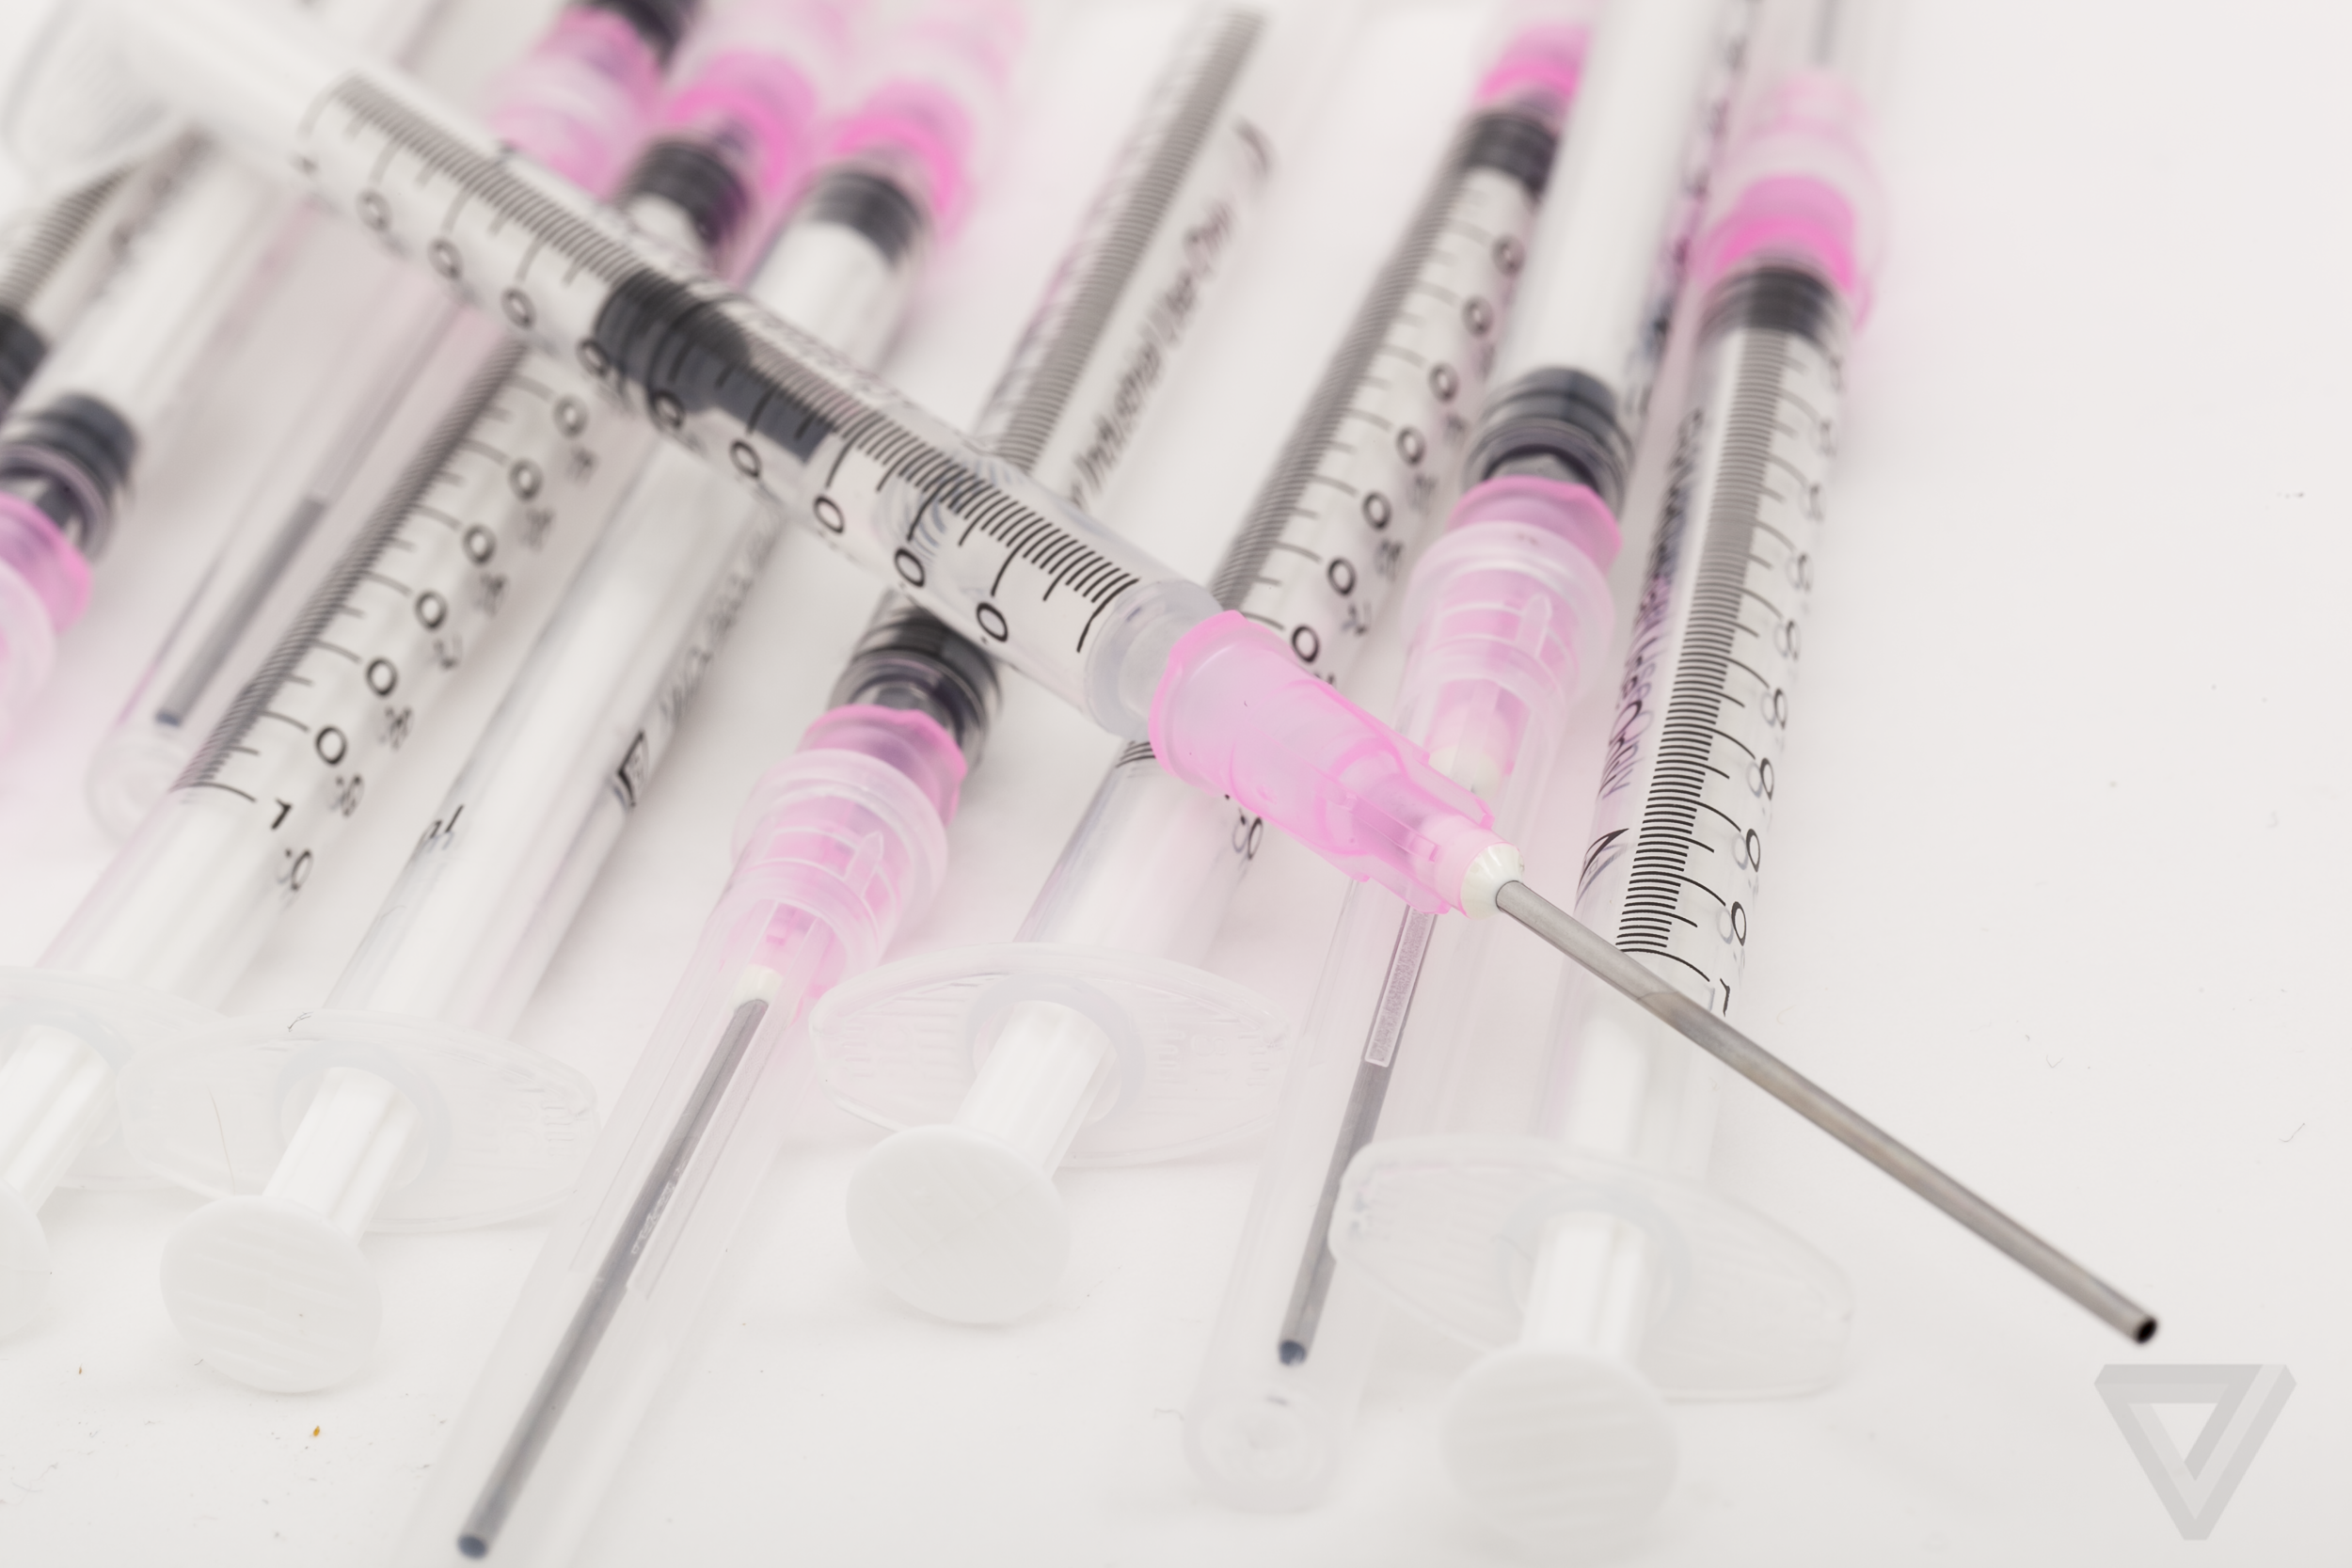 How the fight over vaccines is fueled by web forums - The Verge